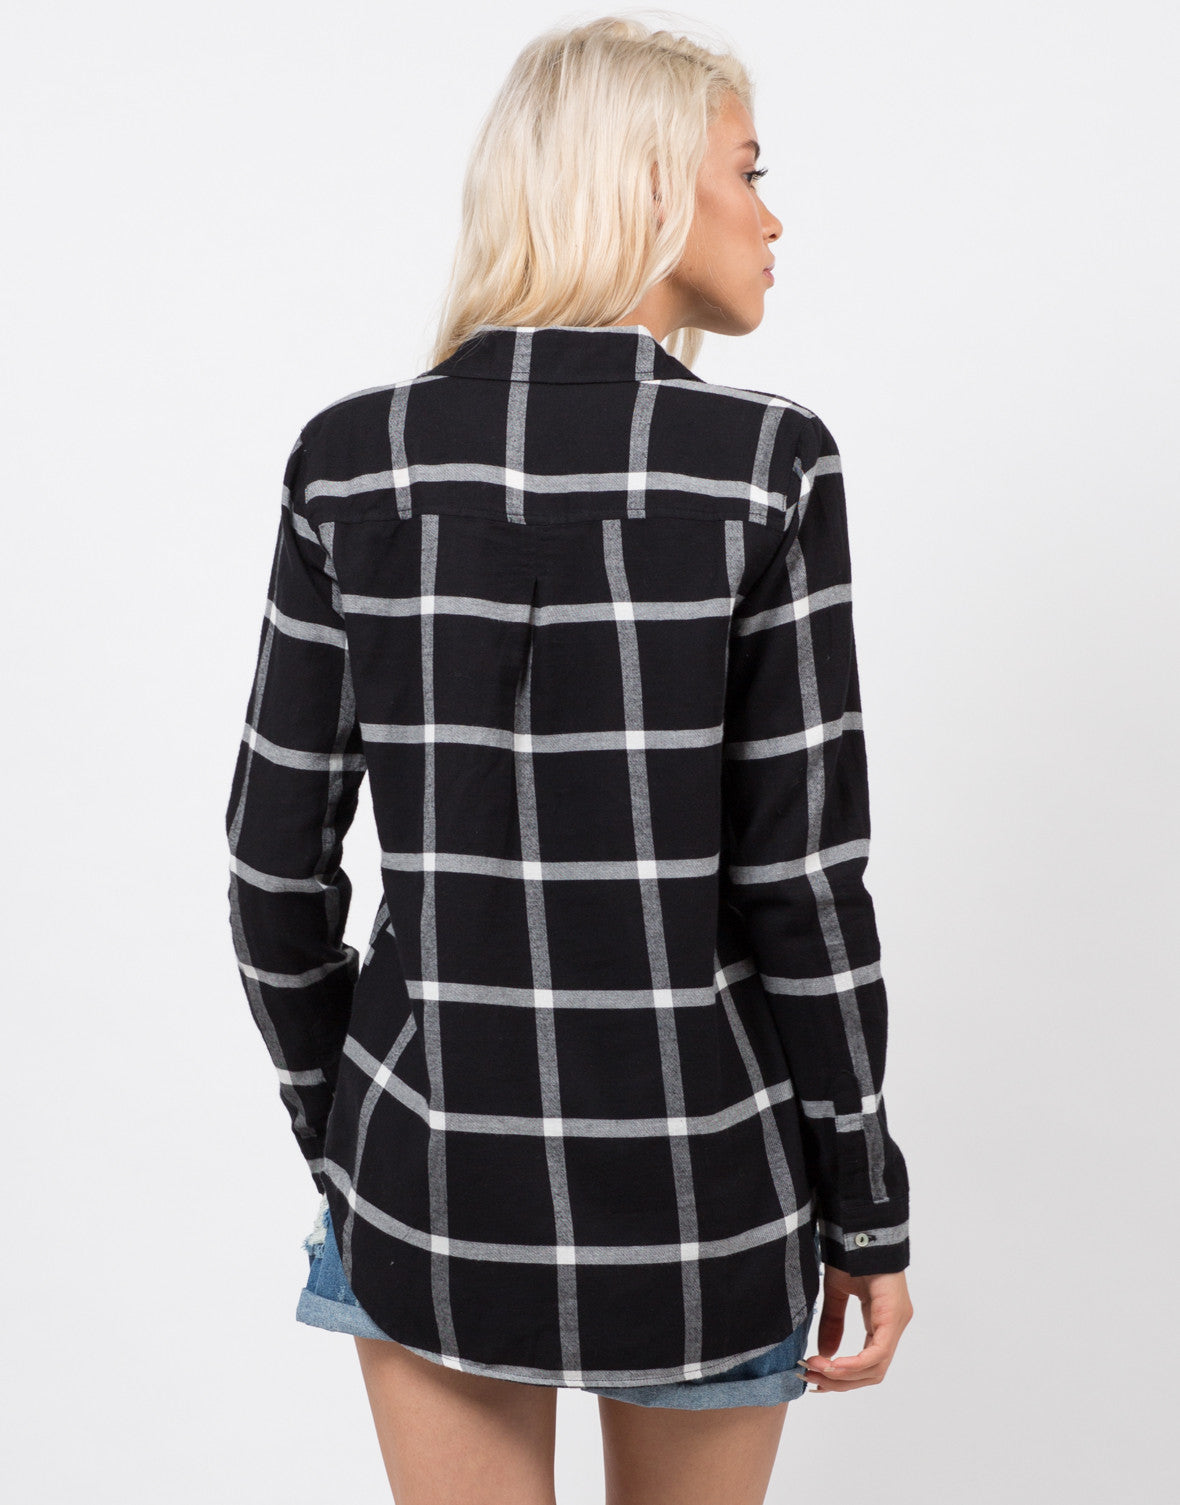 Back View of Plaid Flannel Shirt